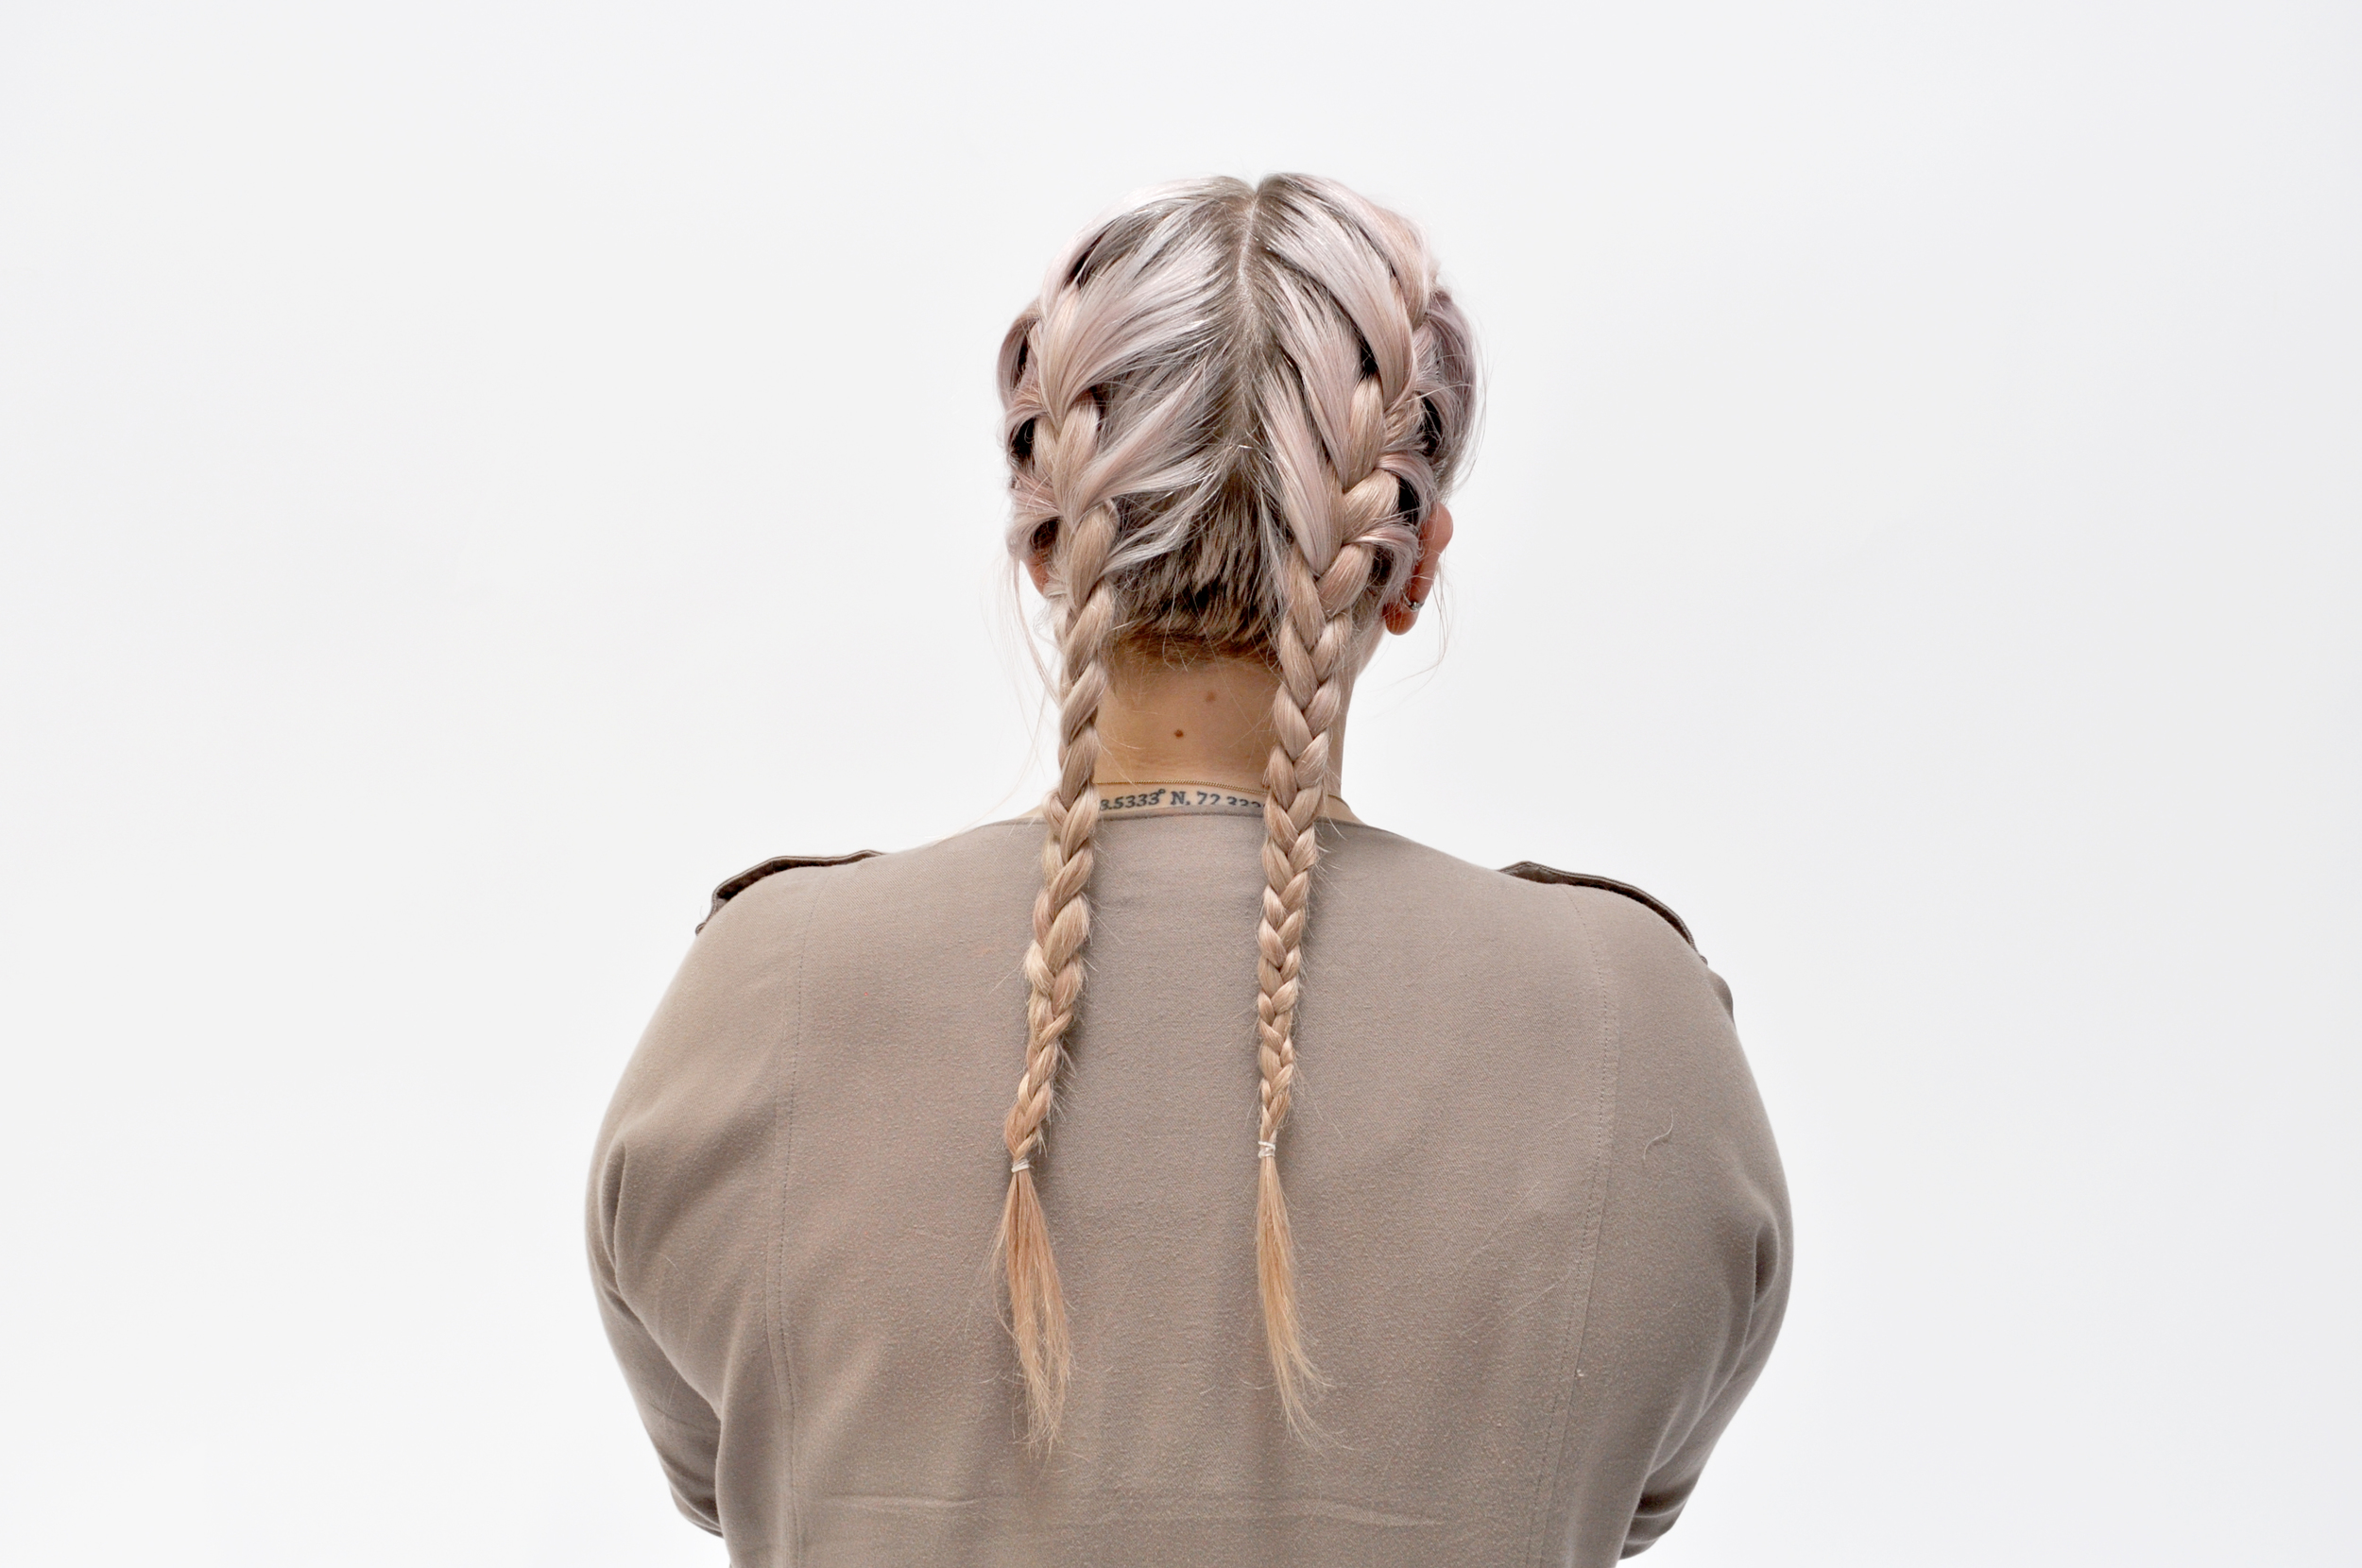 Once you have finished braiding on your head, finish the braid and tie it off with an elastic.Repeat on the opposite site, and TA-DA! You're a braid babe.